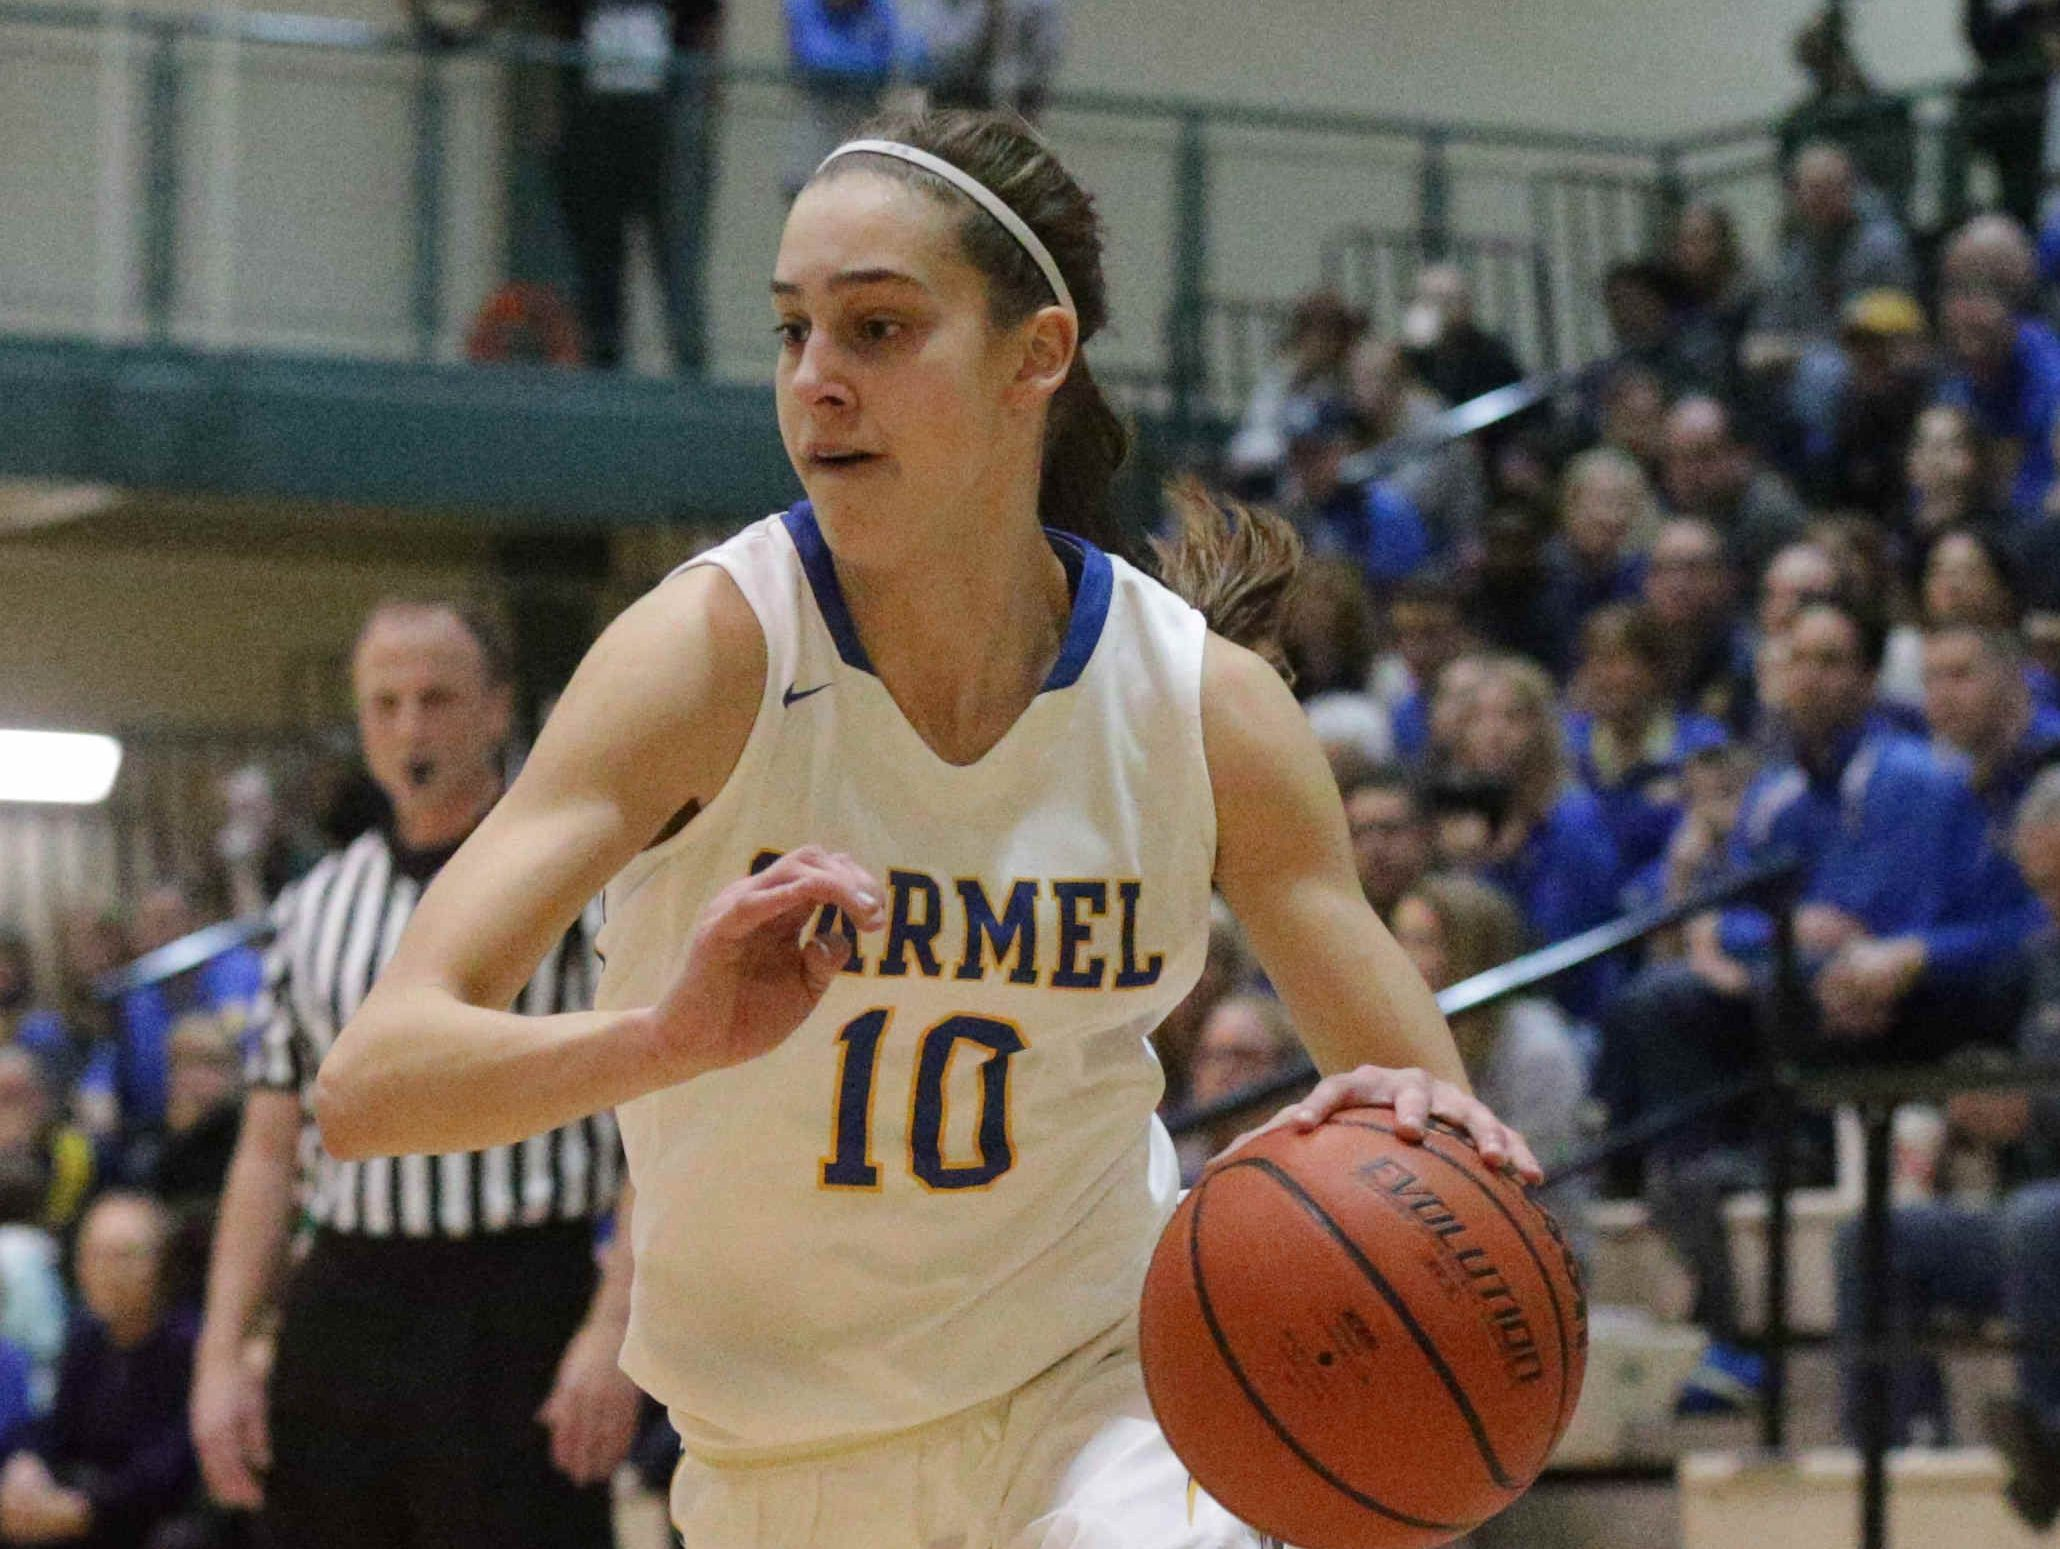 Carmel's Amy Dilk is one of the top point guards in Central Indiana.